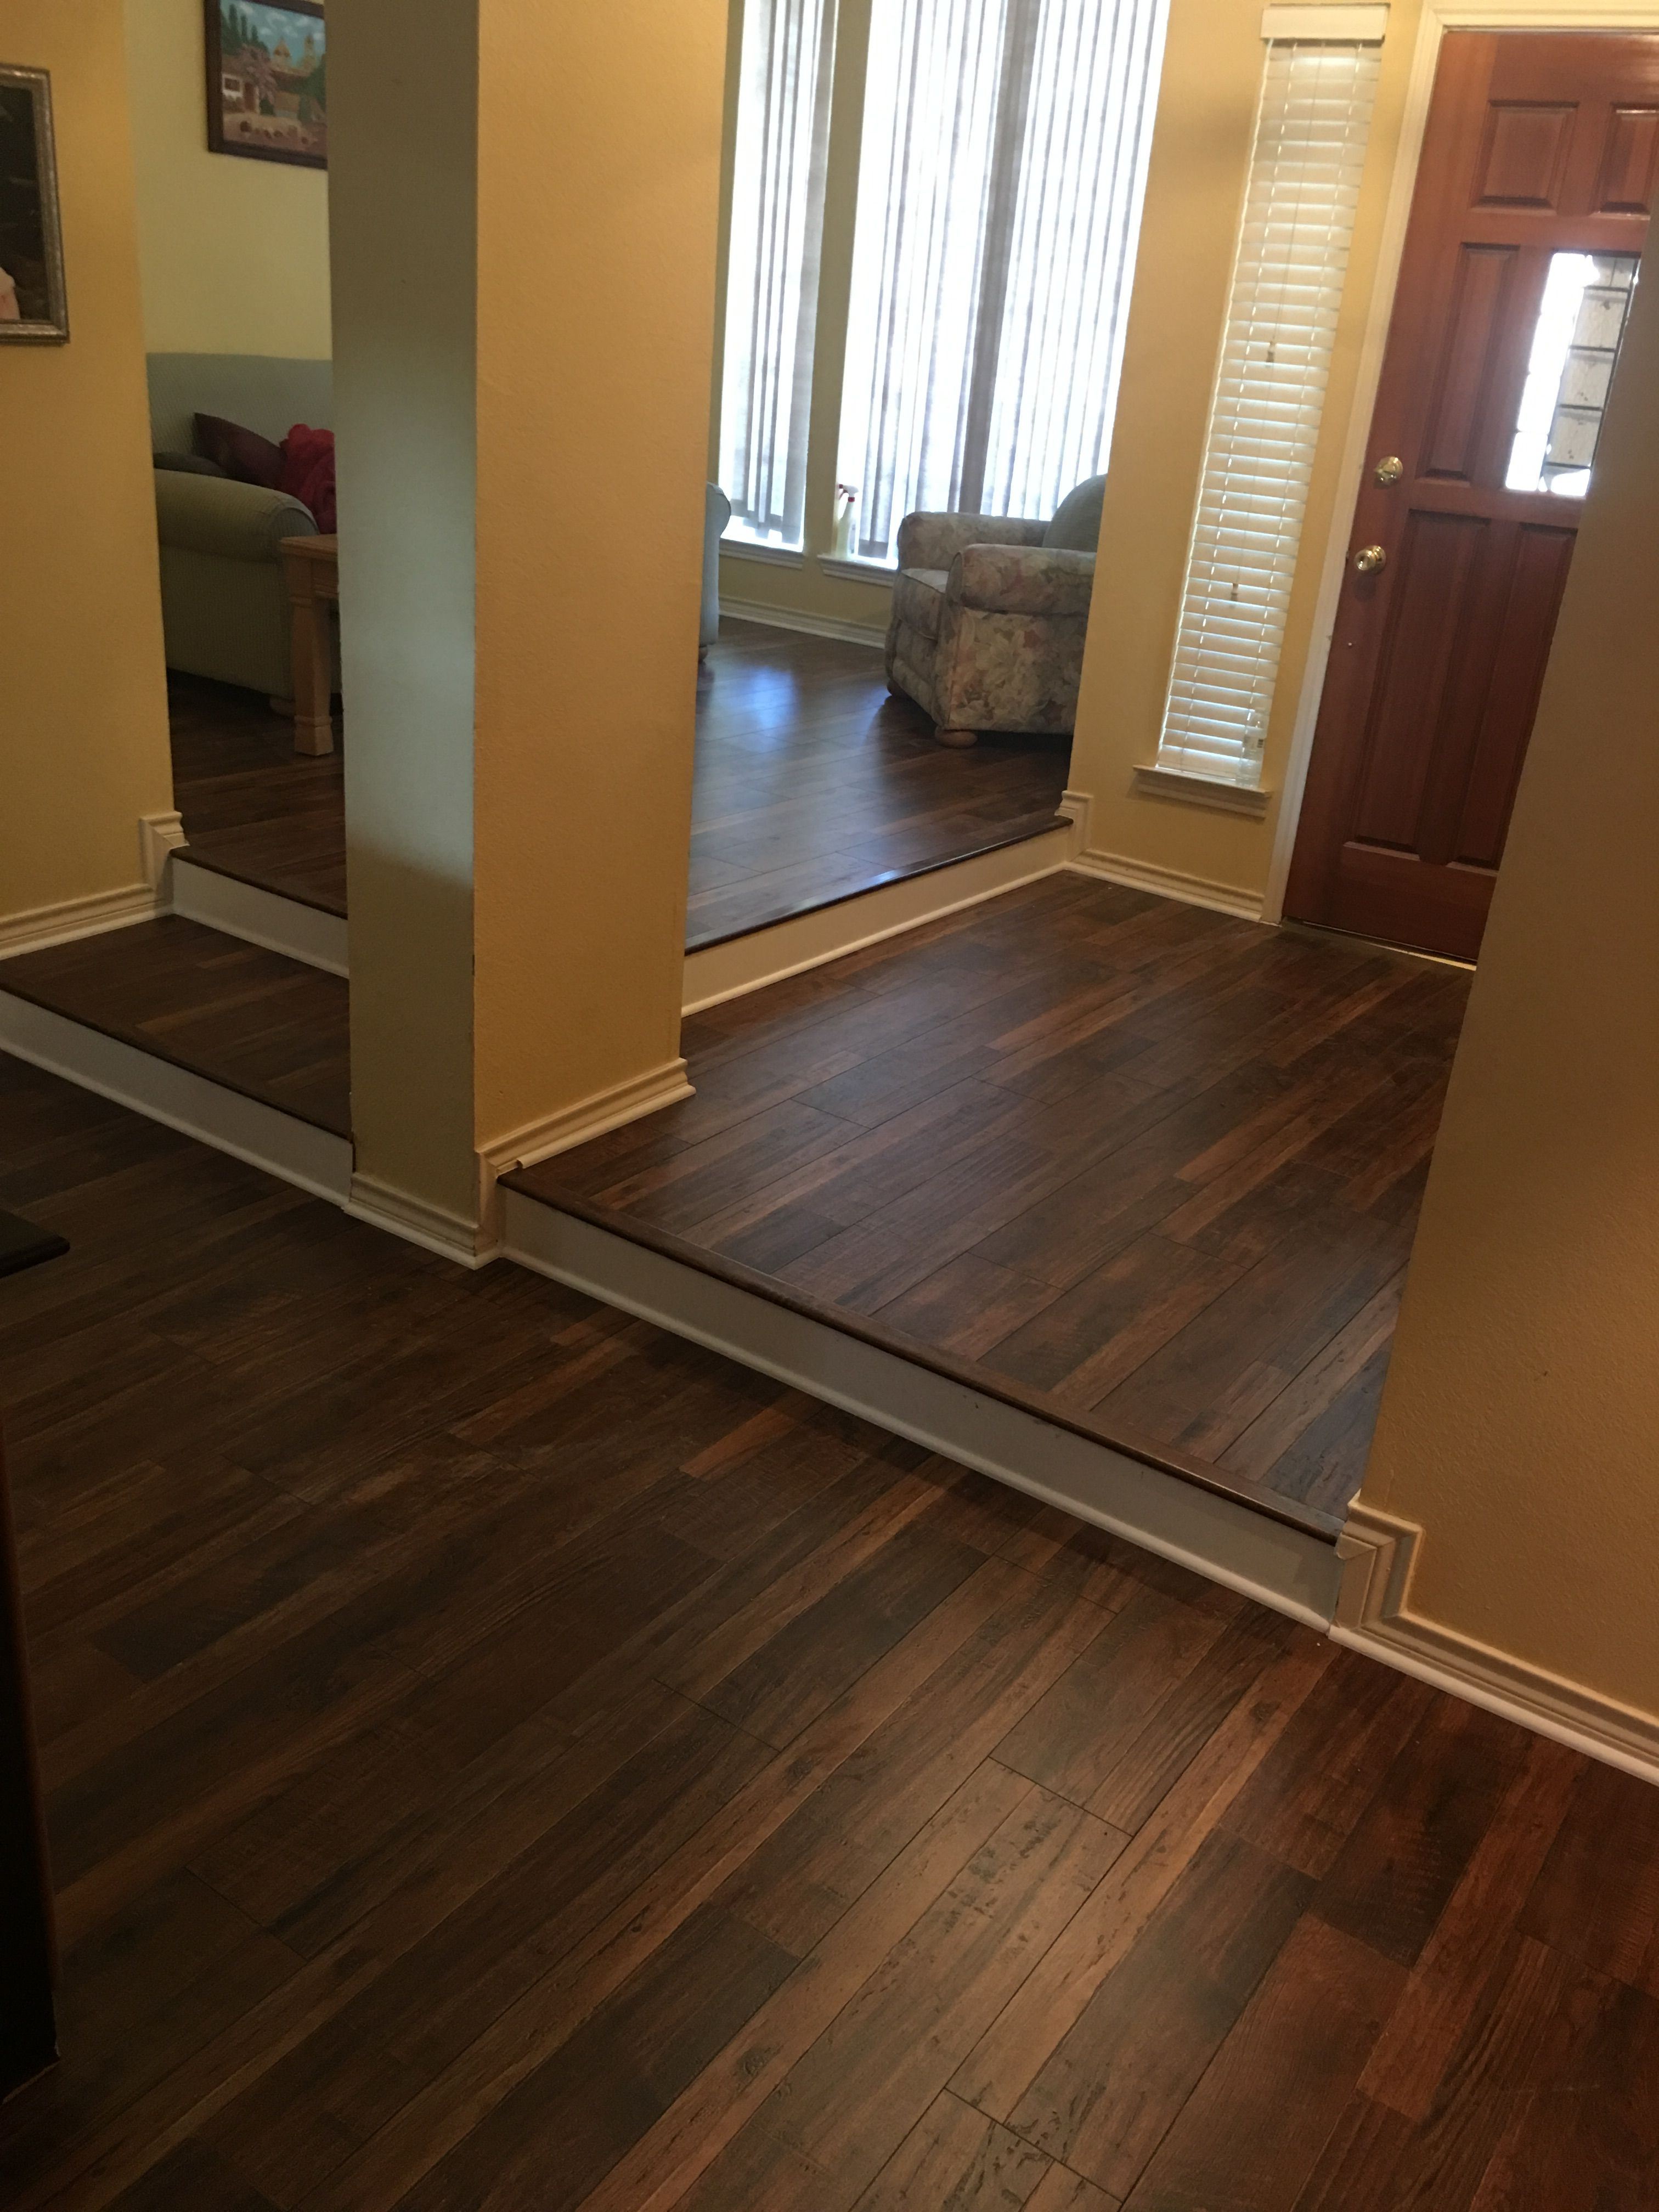 What Is A Floating Floor In Laminate